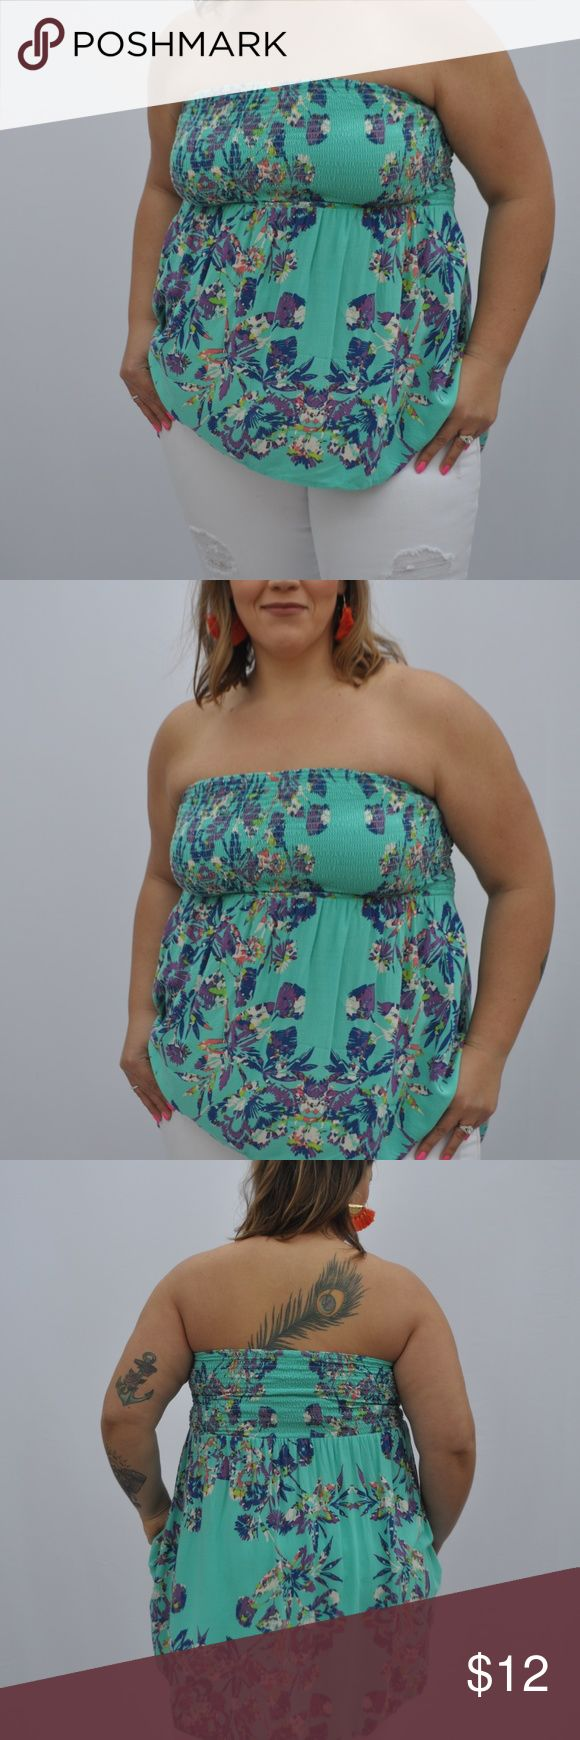 PLUS SIZE FLORAL PRINT BANDEAU TOP Floral Bandeau Top Tube Top Flowy Hugs at the bust  Fun and flirty Cute with jeans or shorts Can also be worn as a swimsuit  cover-up  Only worn it a few times Xhilaration Tops